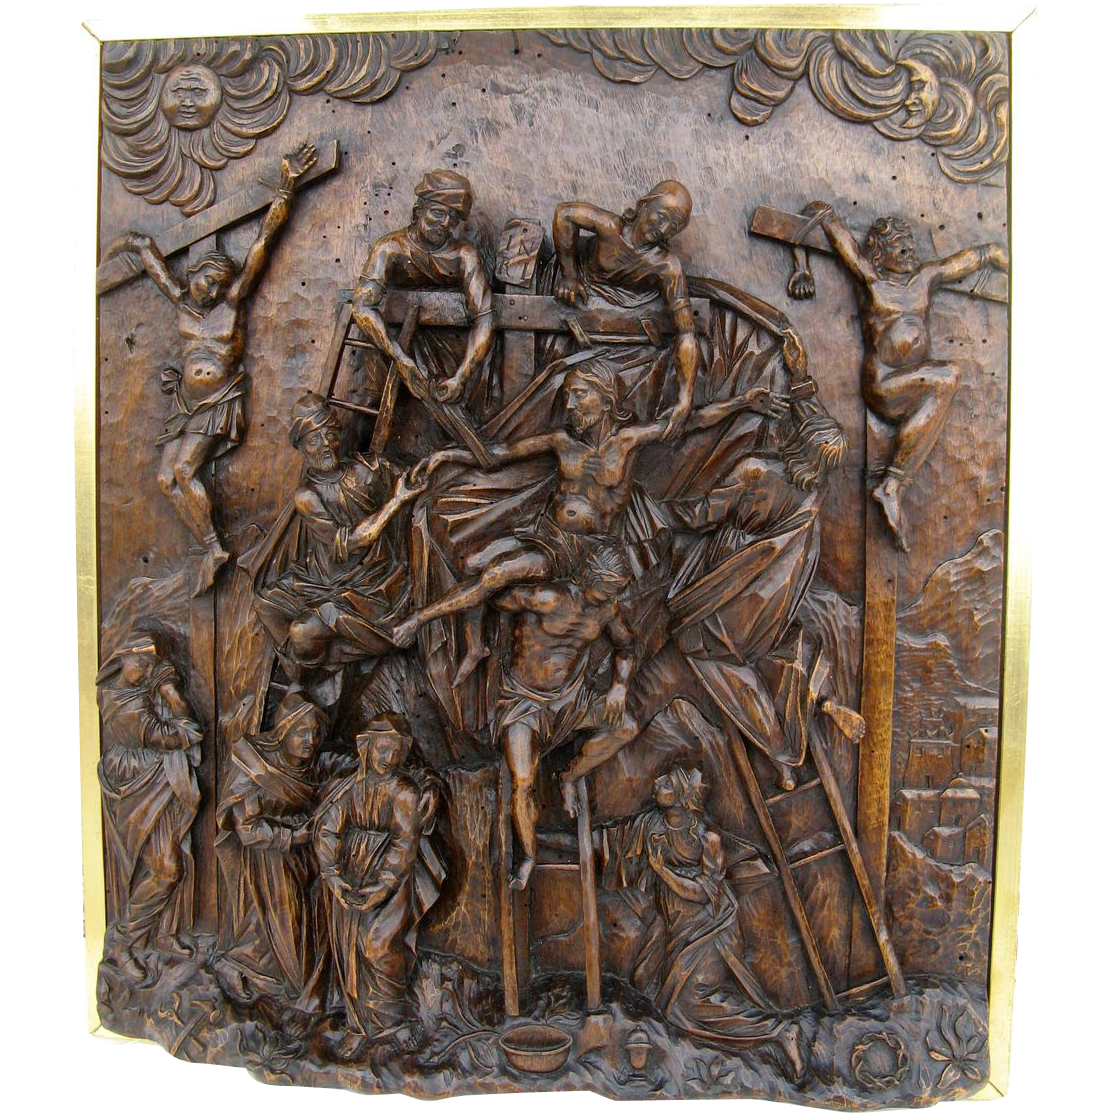 Wonderful walnut high relief carving showing the